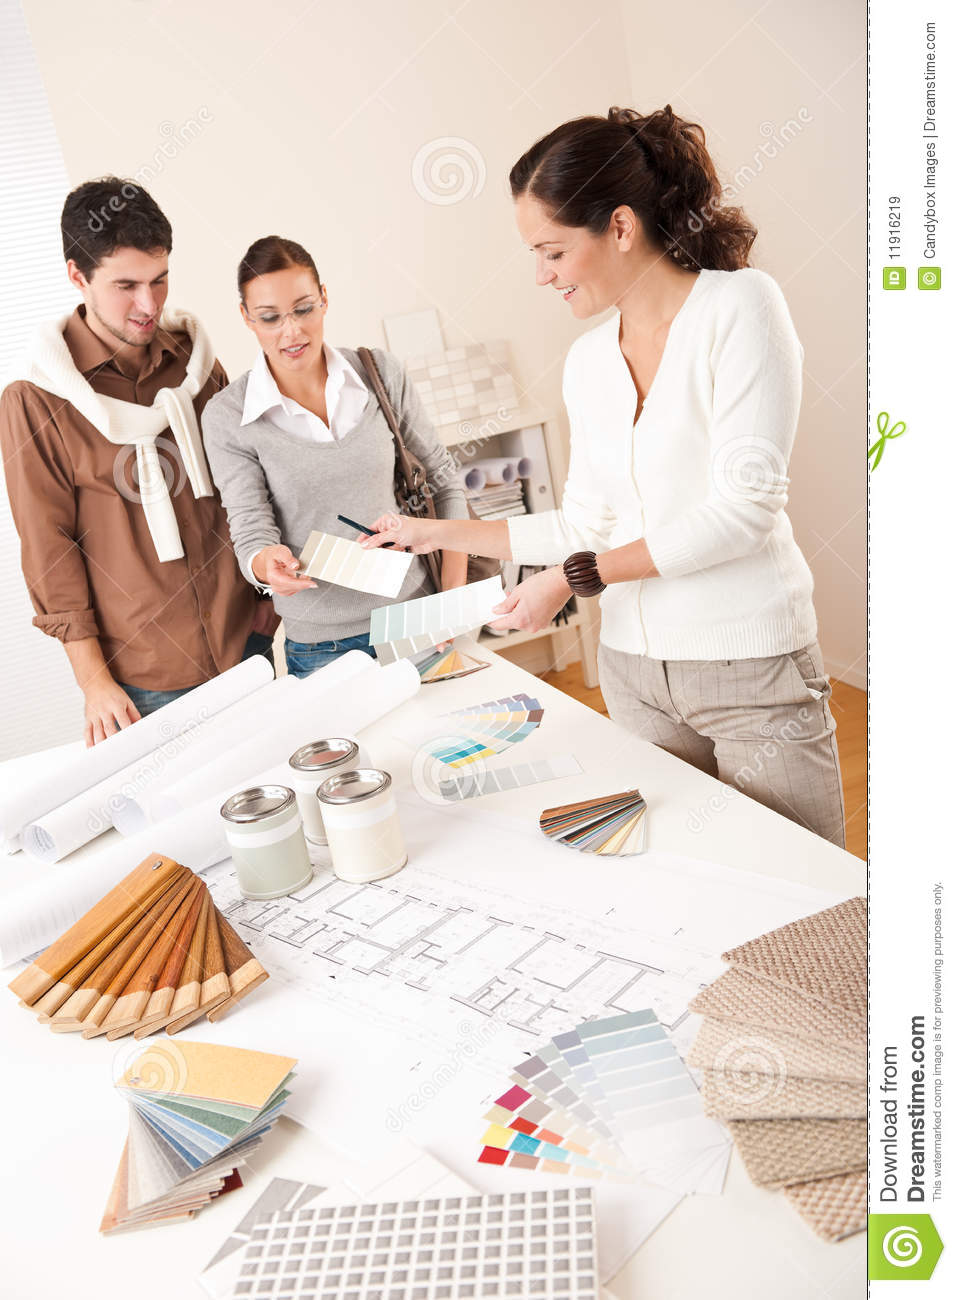 Royalty Free Stock Photo Client Designer Female Interior